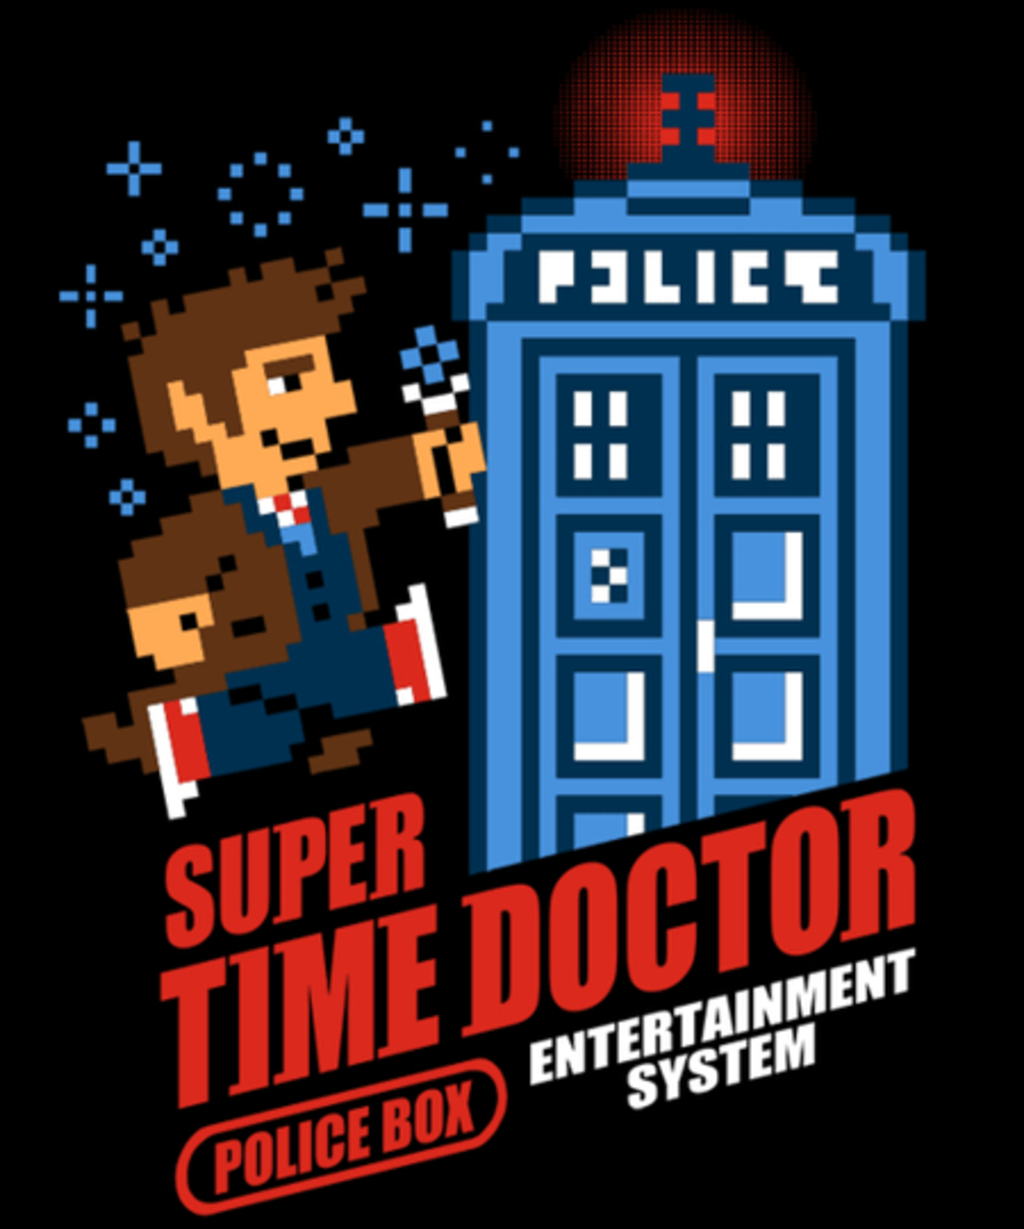 Qwertee: Super Time Doctor